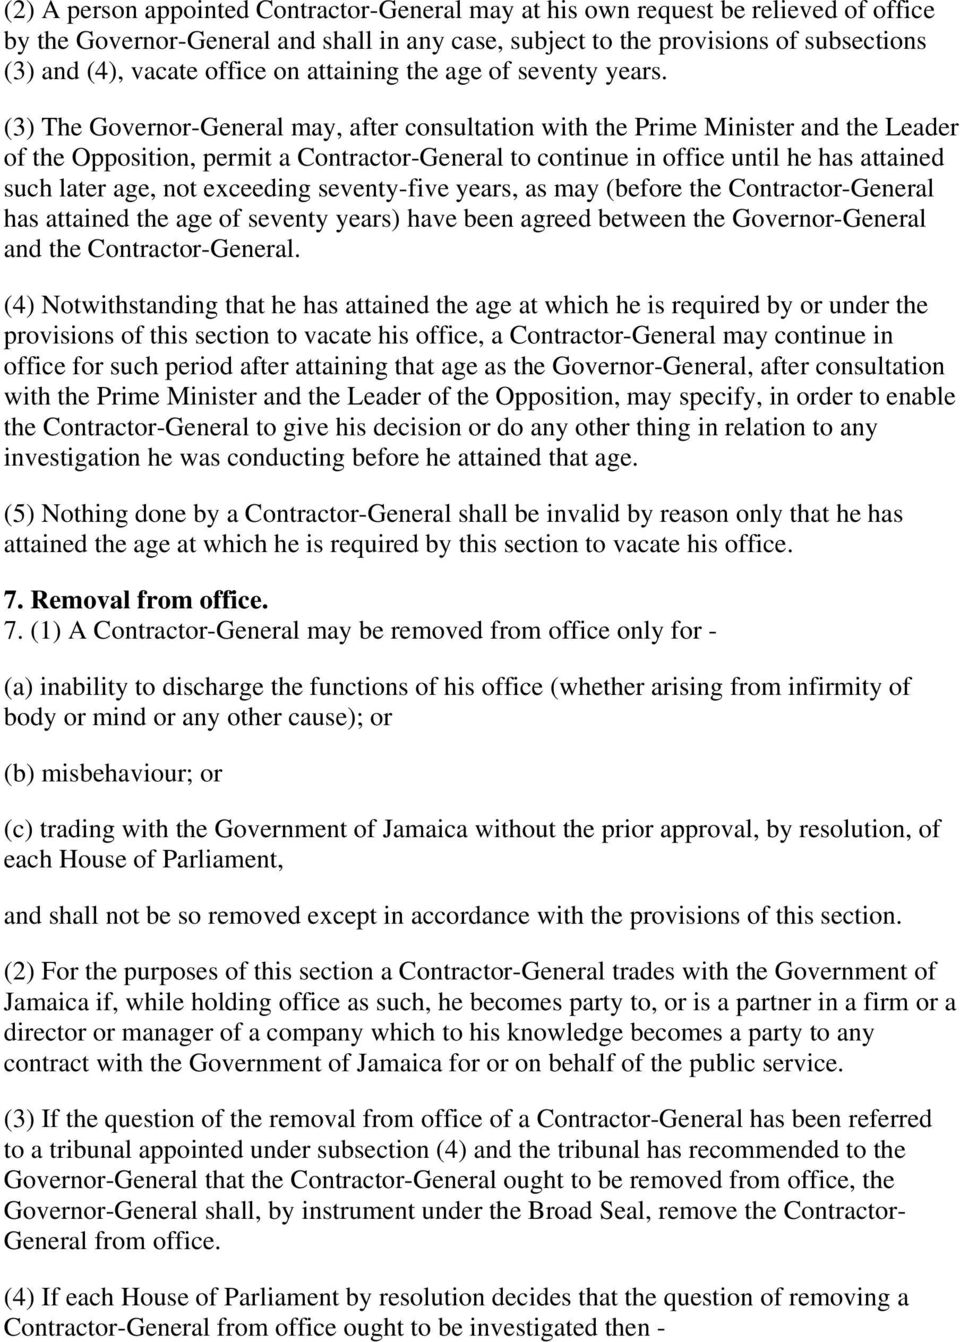 (3) The Governor-General may, after consultation with the Prime Minister and the Leader of the Opposition, permit a Contractor-General to continue in office until he has attained such later age, not